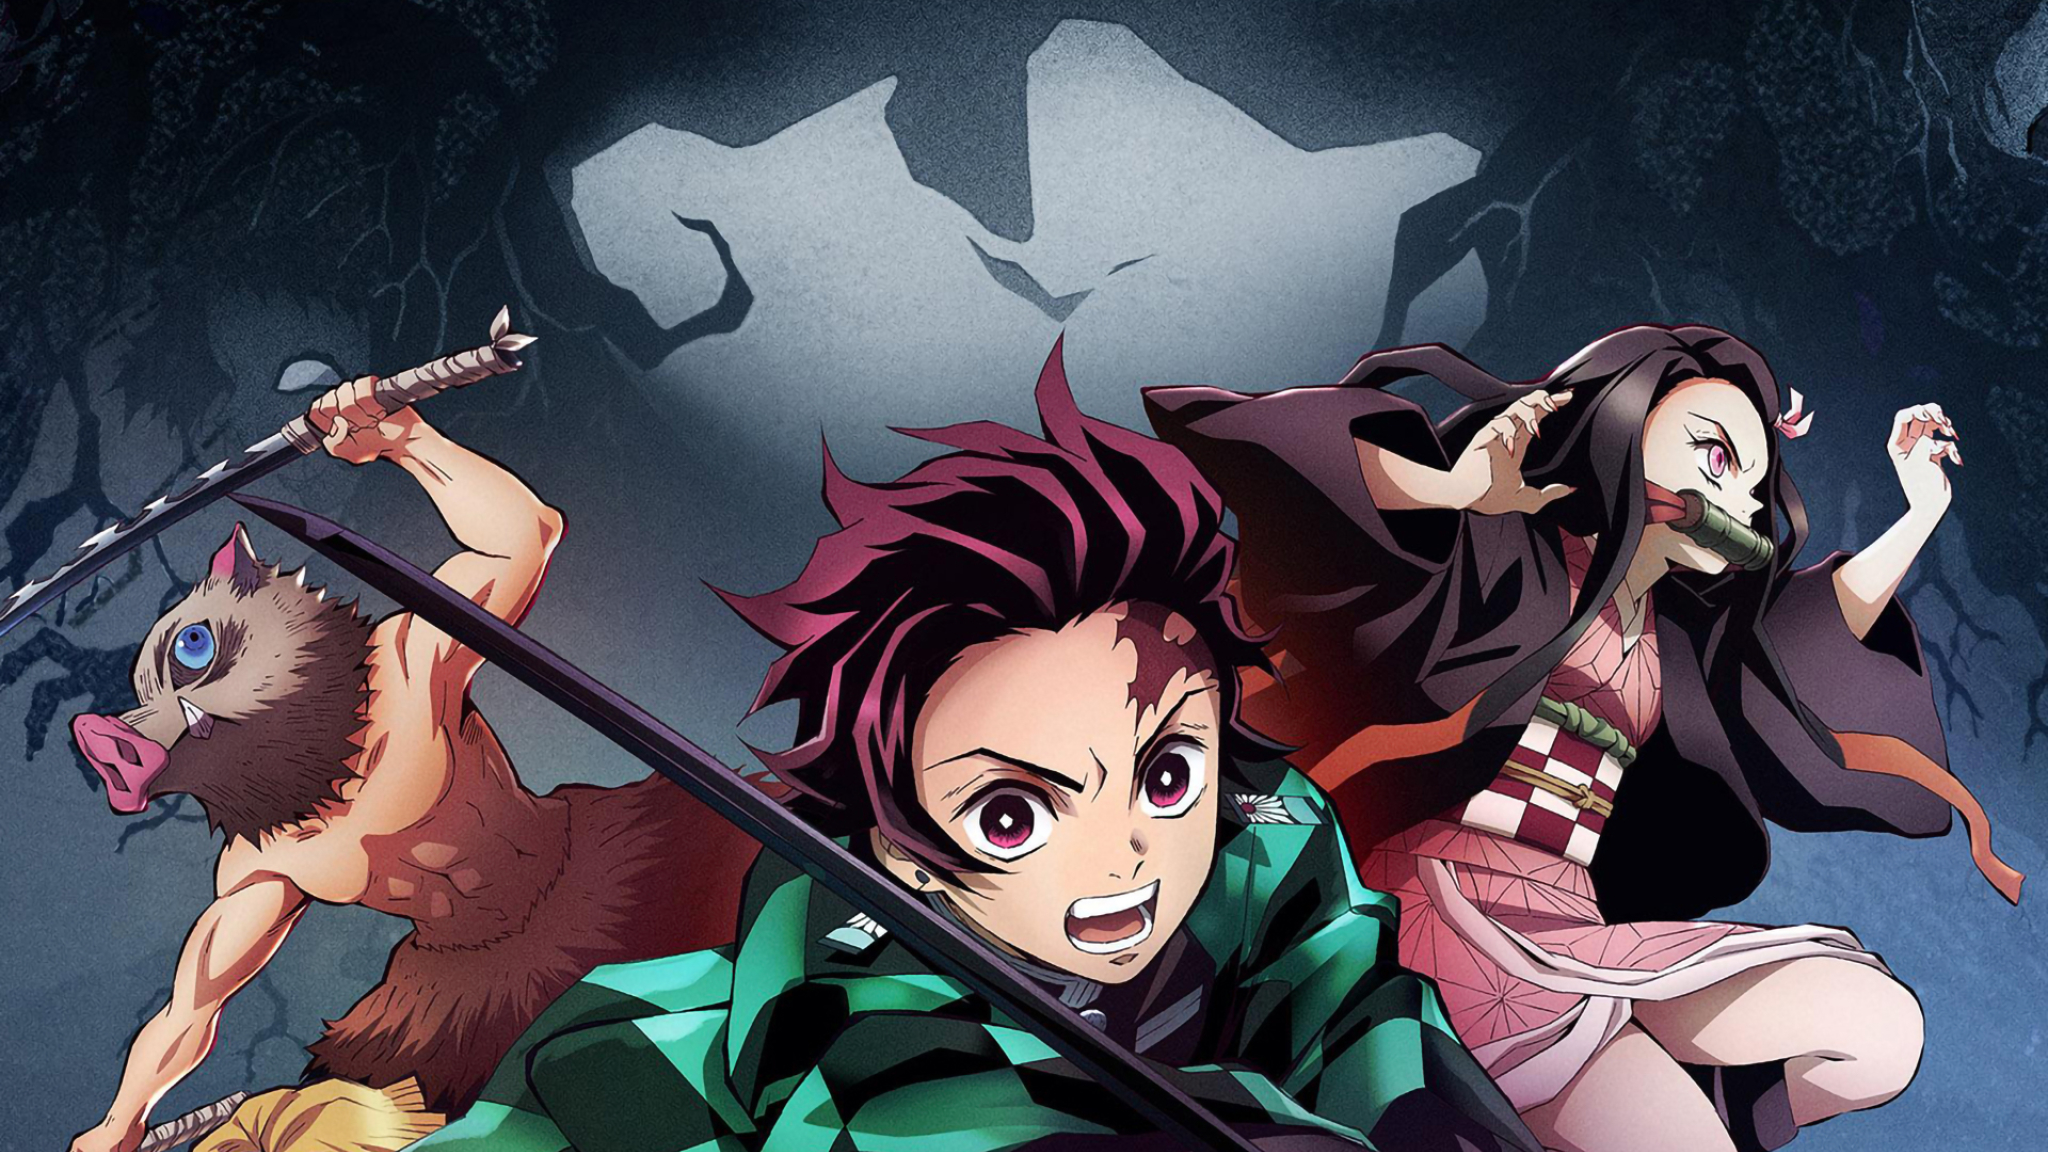 Demon Slayer Kimetsu no Yaiba Chapter 204 Release Date, Raw Scans and Read Online